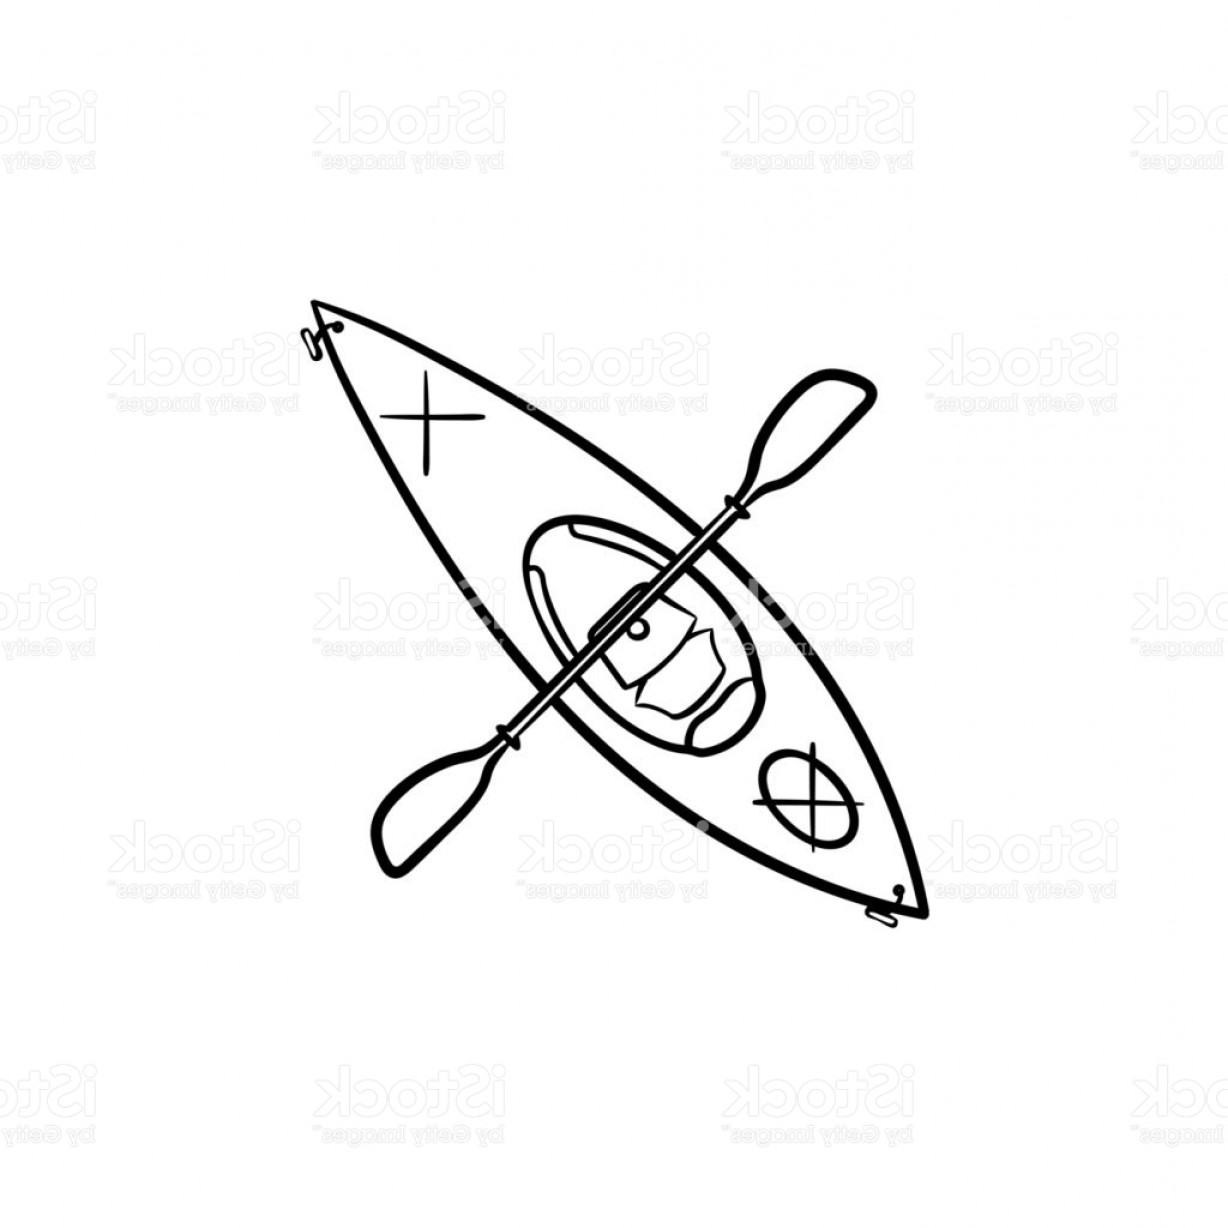 Paddle Vector Art: Kayak With Paddle Hand Drawn Sketch Icon Gm